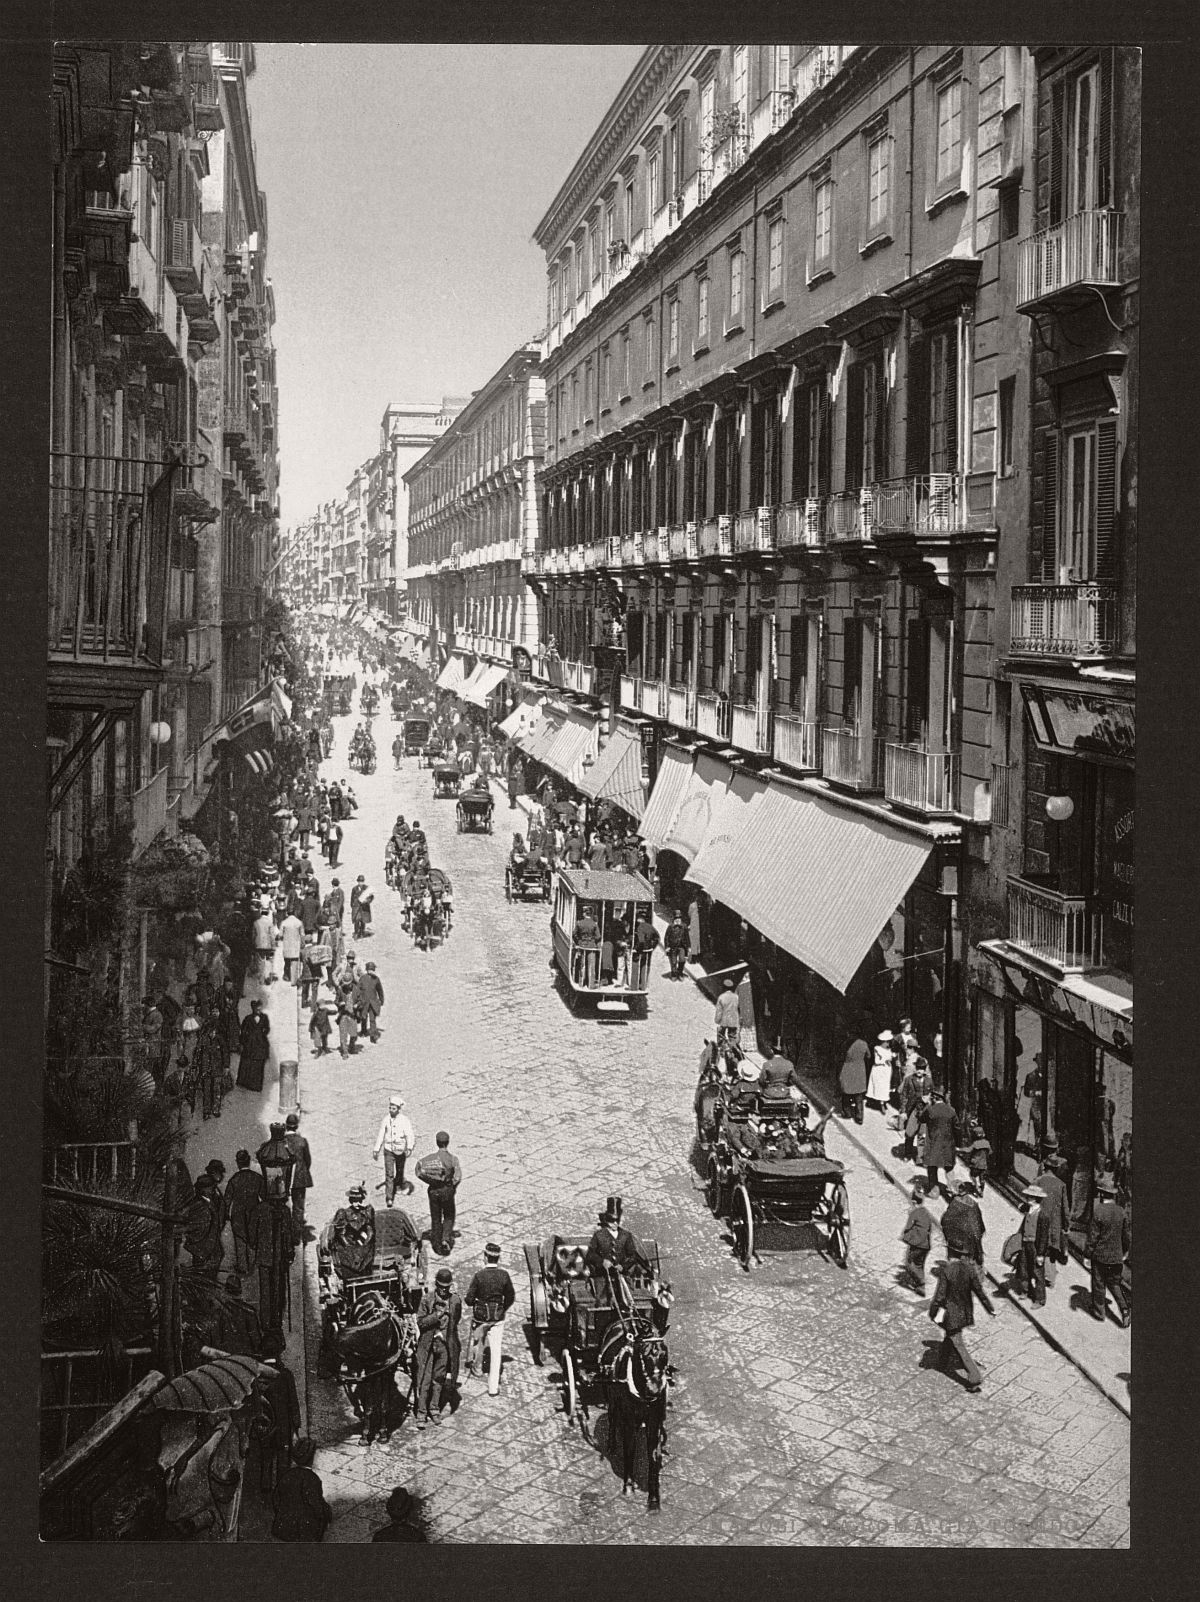 historic-bw-photos-of-naples-italy-in-19th-century-02